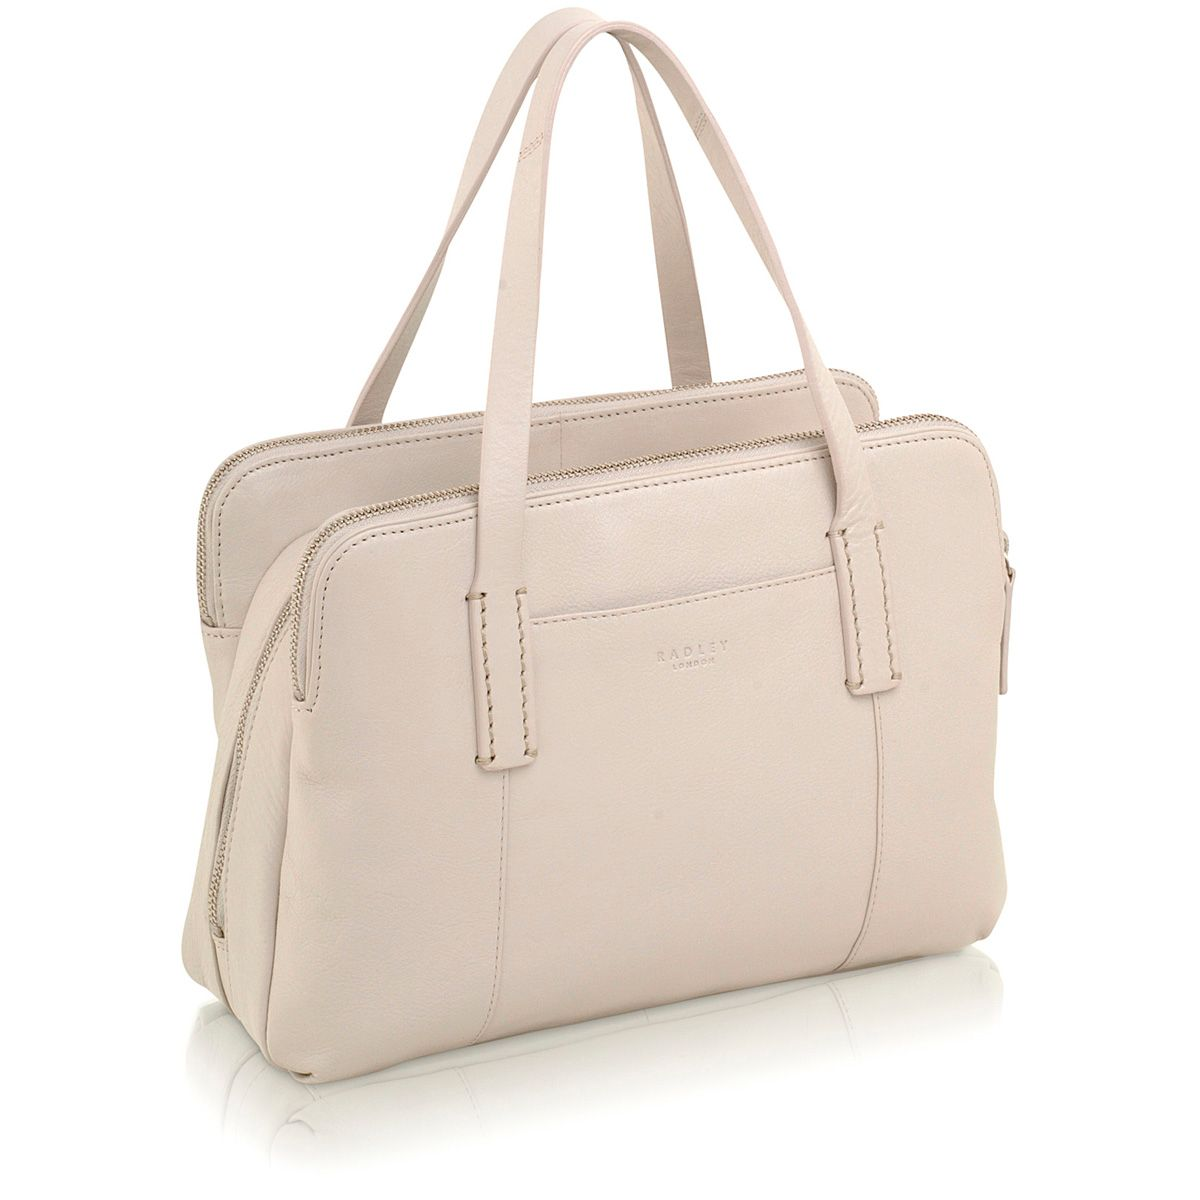 Bayer cream medium tote bag